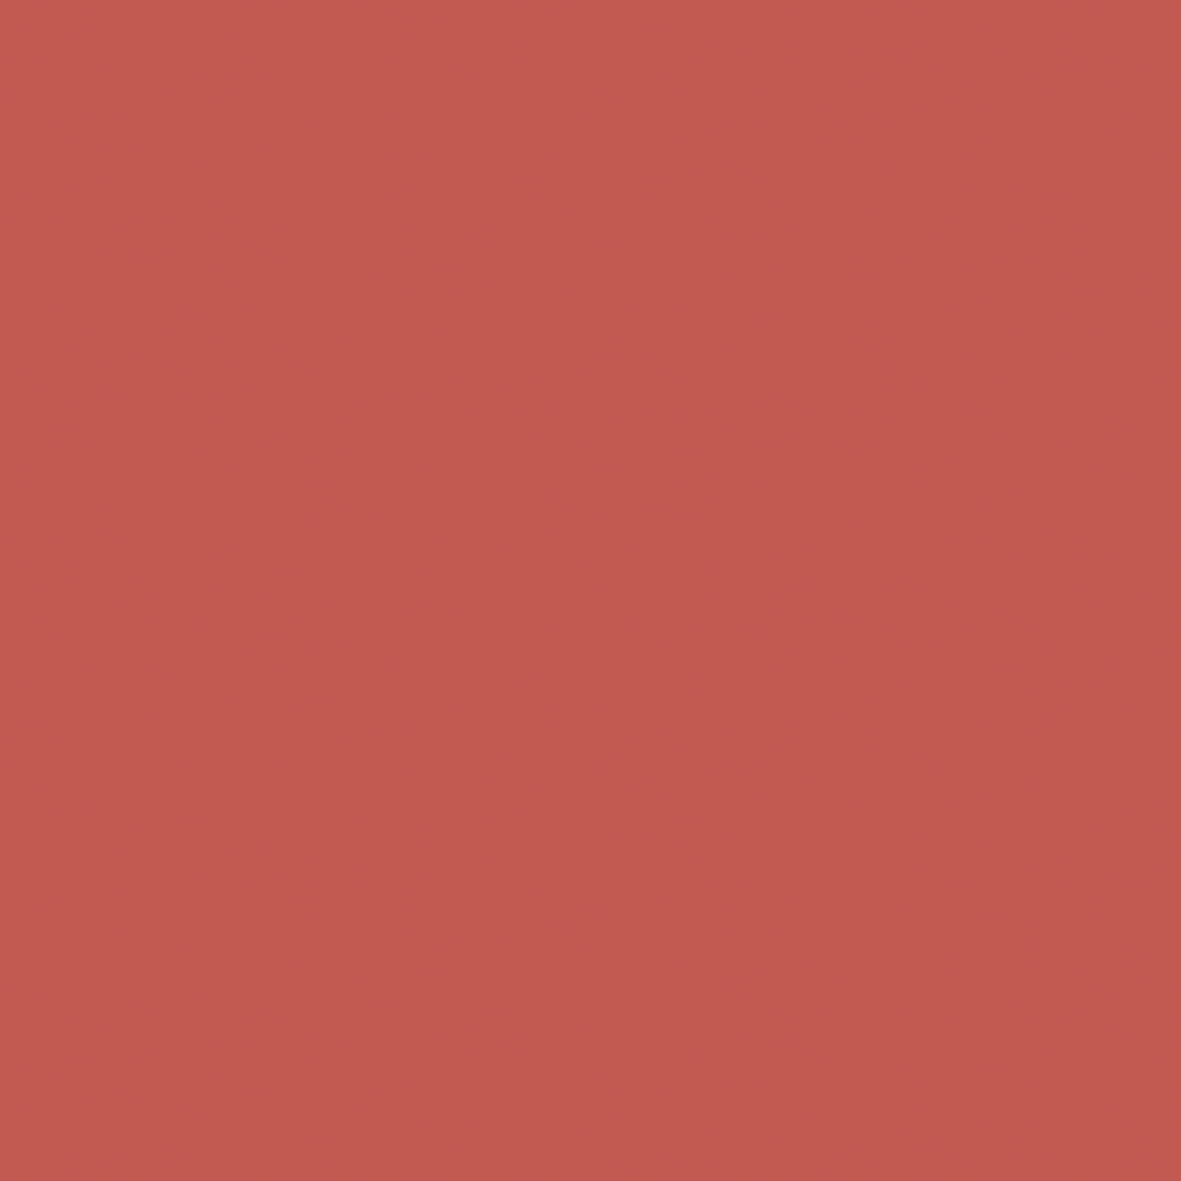 V1270/1271 Pure Red